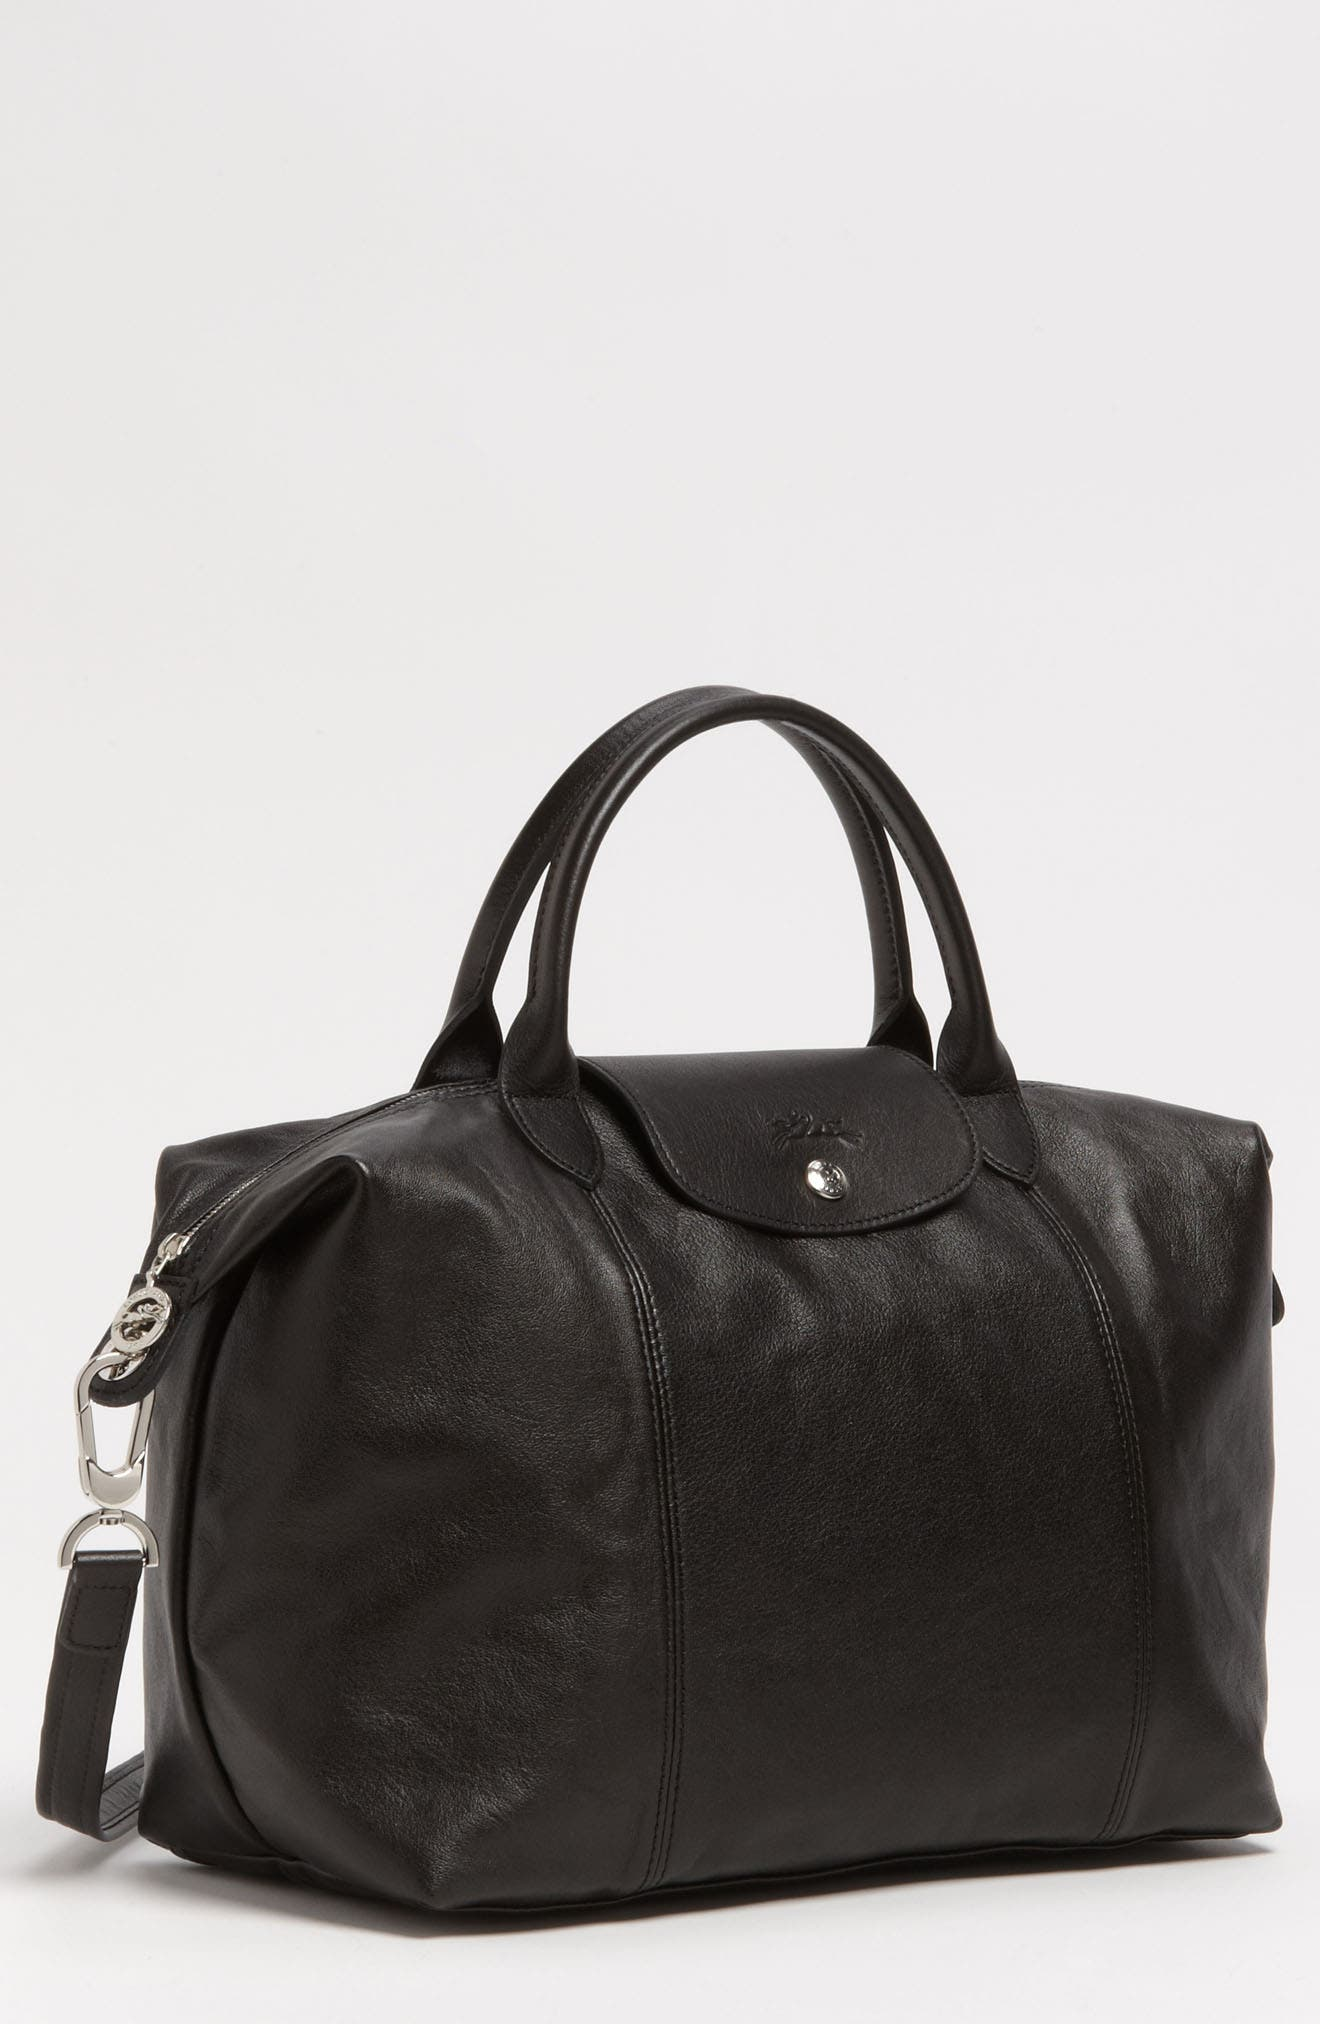 Medium 'Le Pliage Cuir' Leather Top Handle Tote,                             Alternate thumbnail 2, color,                             BLACK